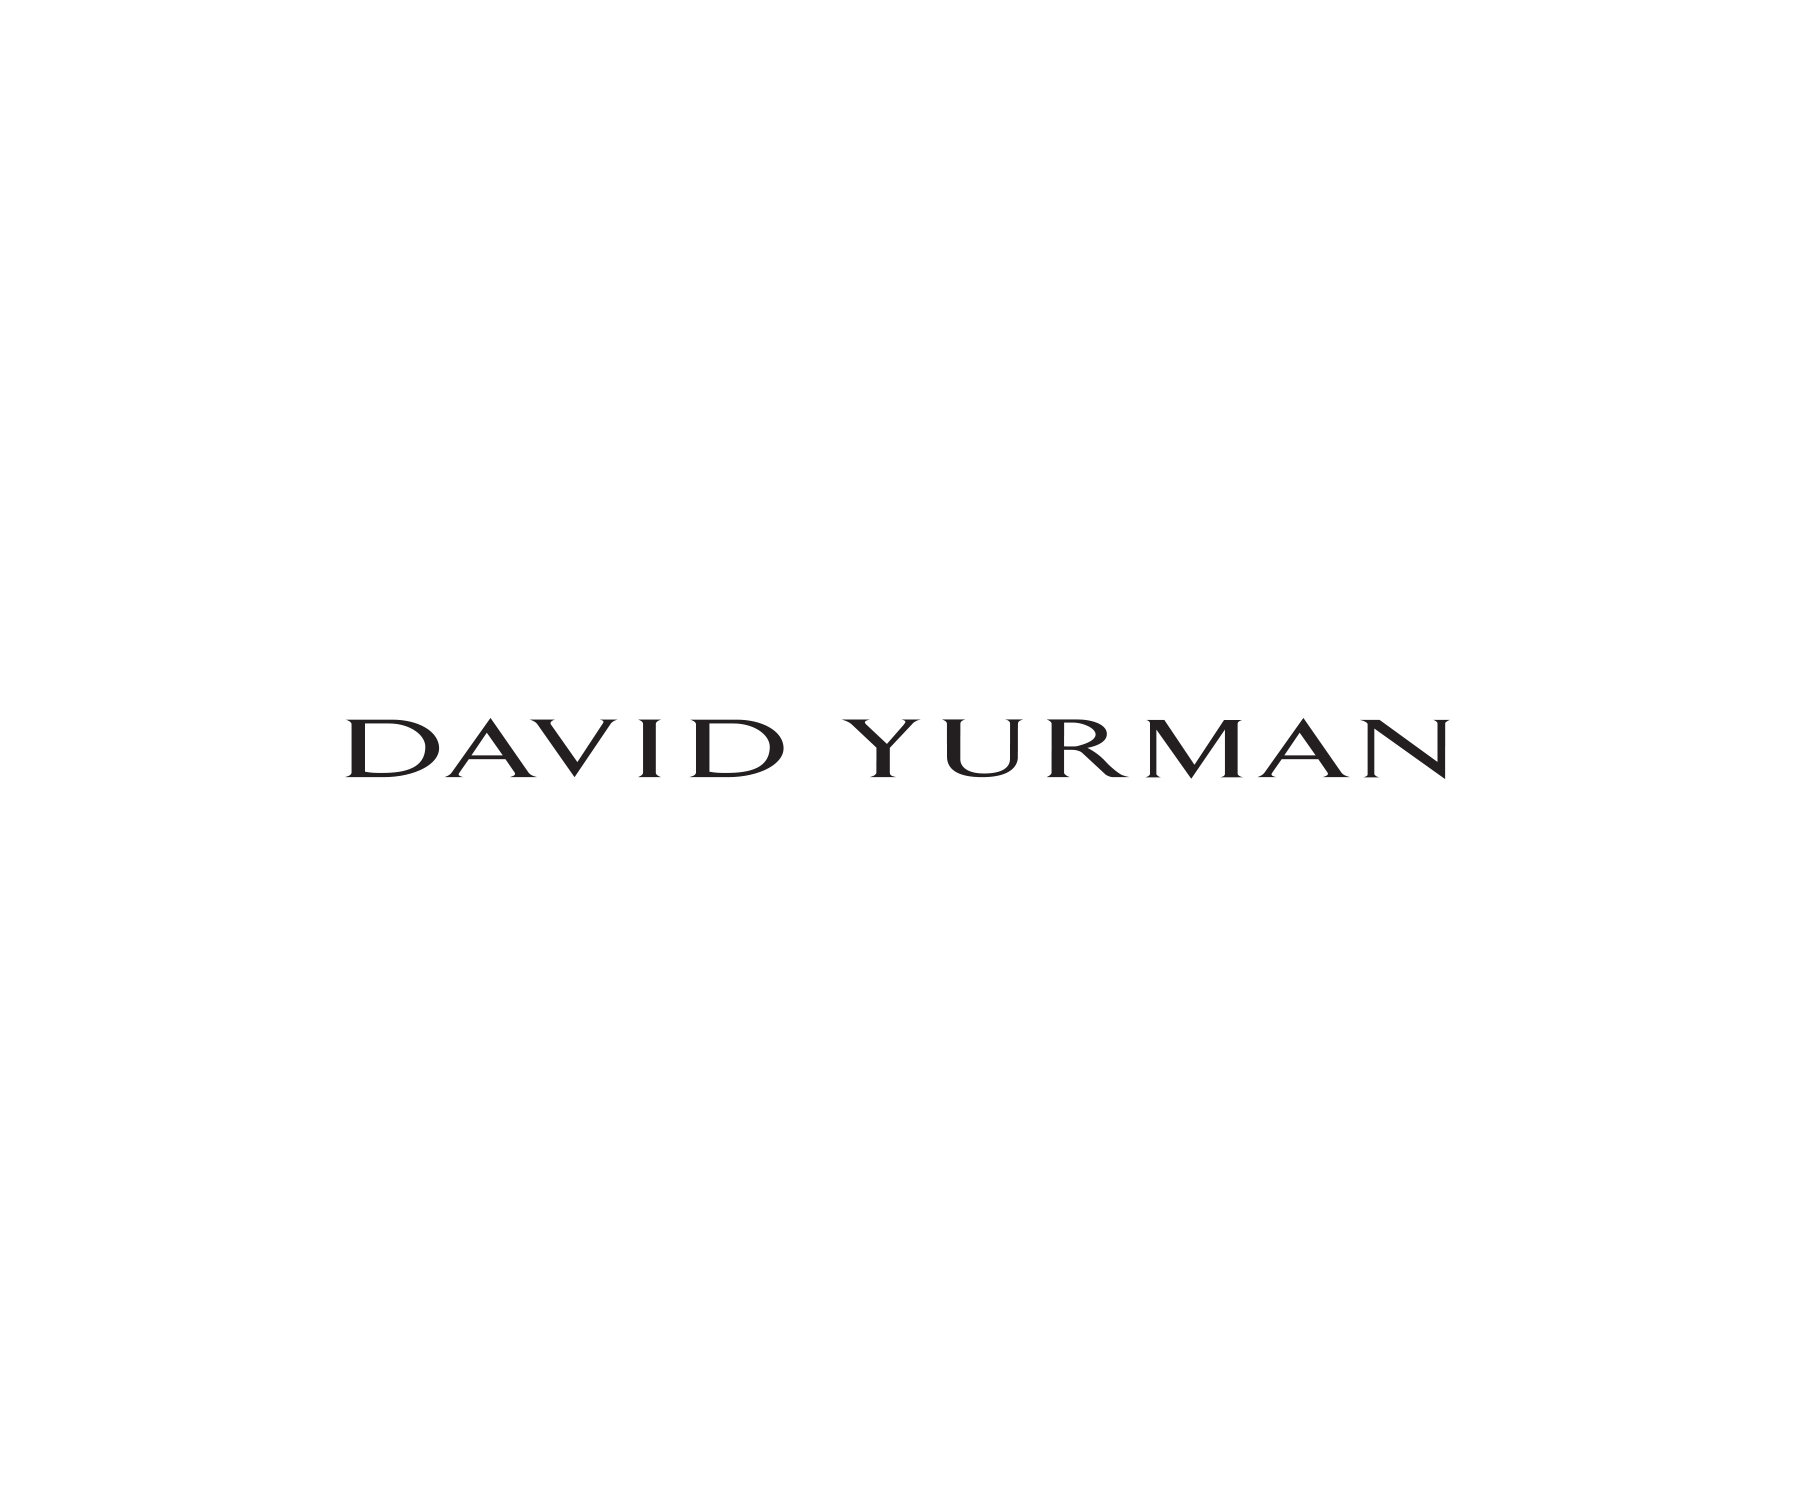 David Yurman Continuance®, Helena and Pearl rings in sterling silver or 18K yellow gold with cultured pearls and white diamonds, arranged in a group casting shadows on a light textured stone.